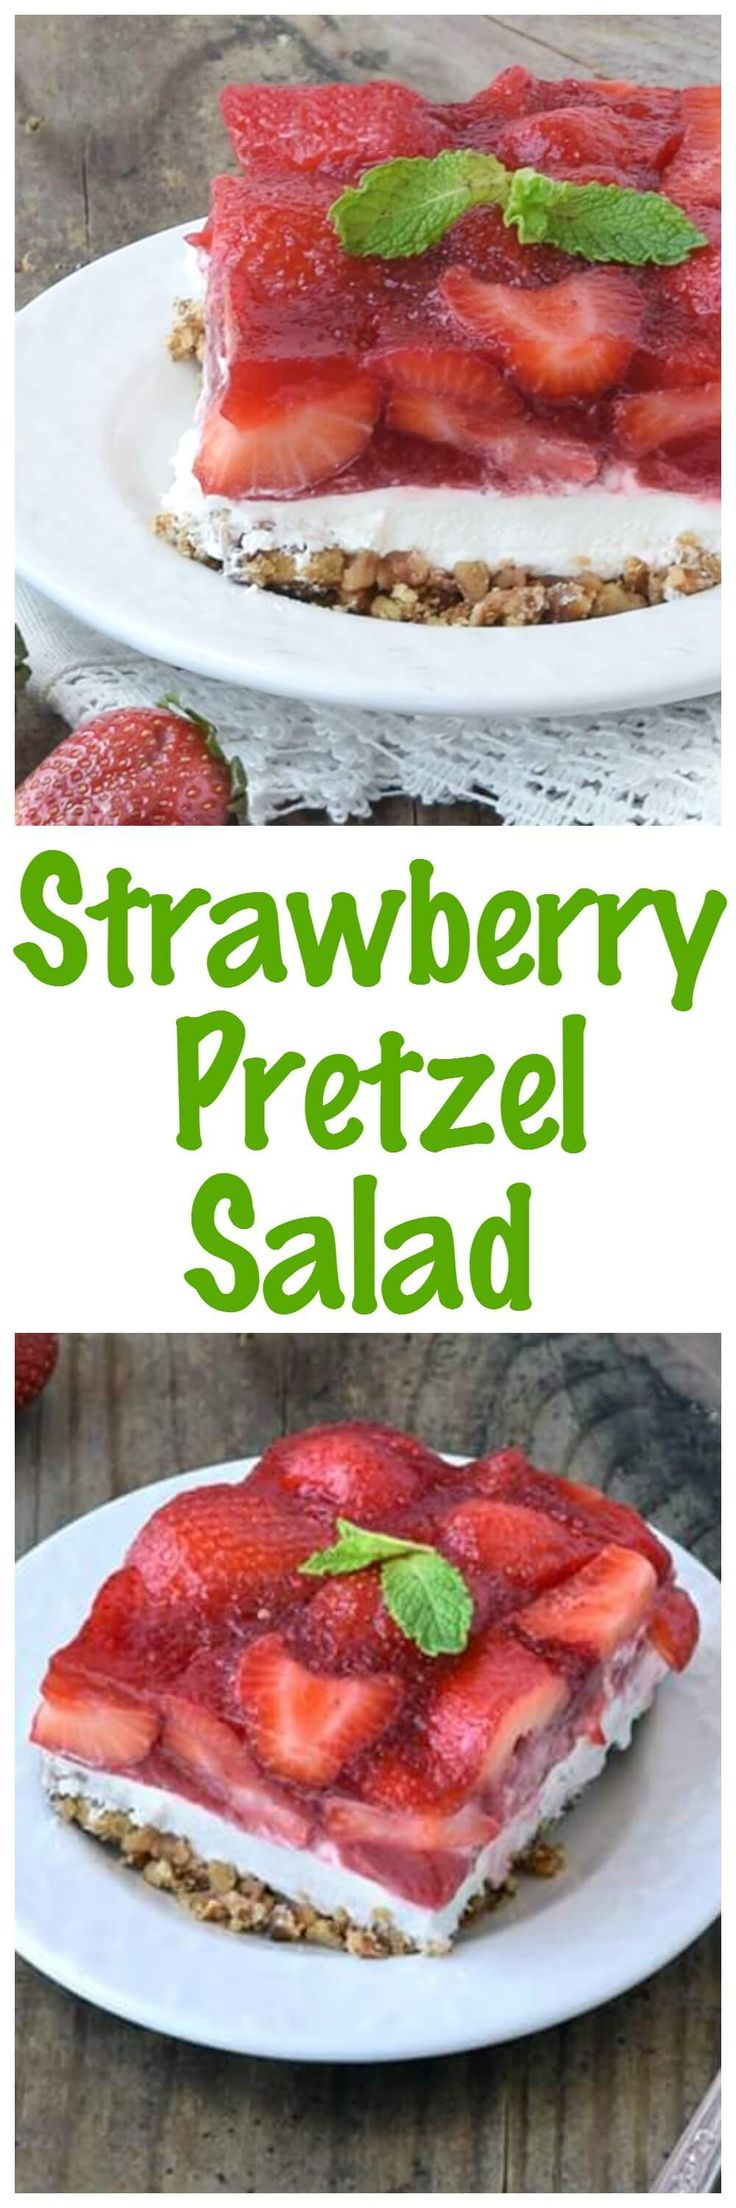 Strawberry Pretzel Salad! This classic recipe is a favorite at all of our gatherings! The best part is that this recipe is even better made a day or two ahead of time!